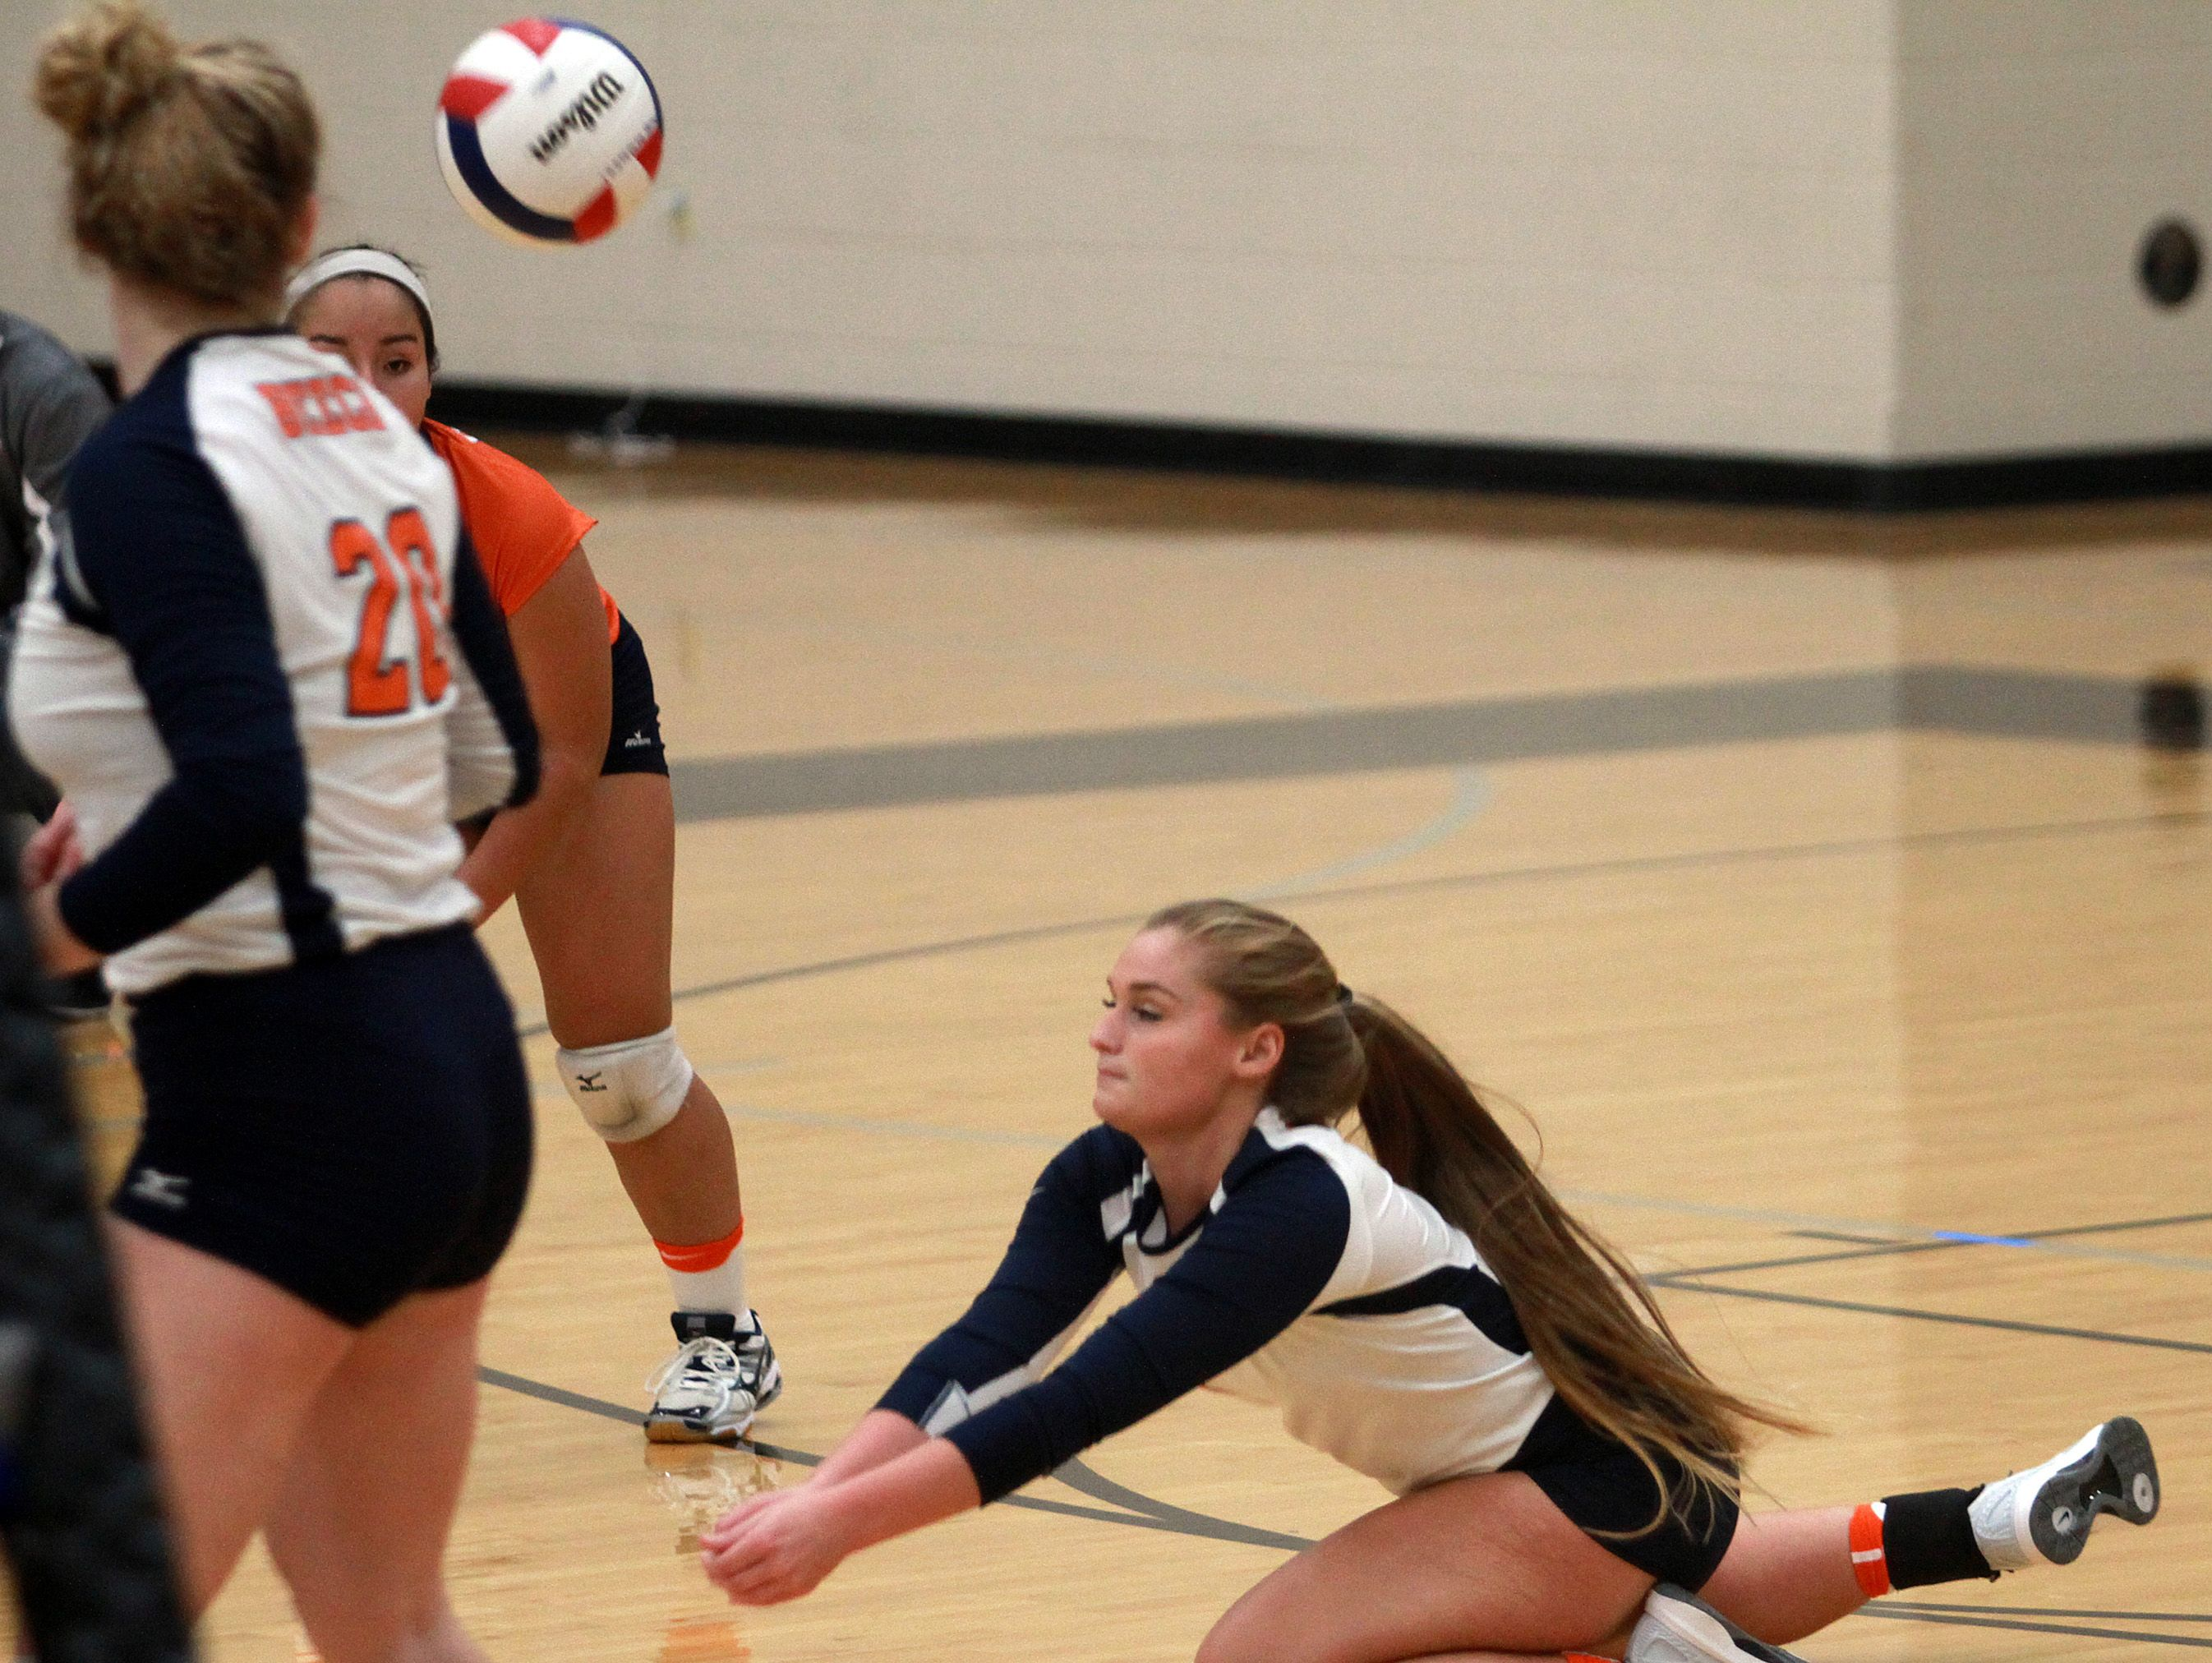 Beech's Chloee McDaniel digs for a ball against Wilson Central during Monday's District 9-AAA Tournament quarterfinals.